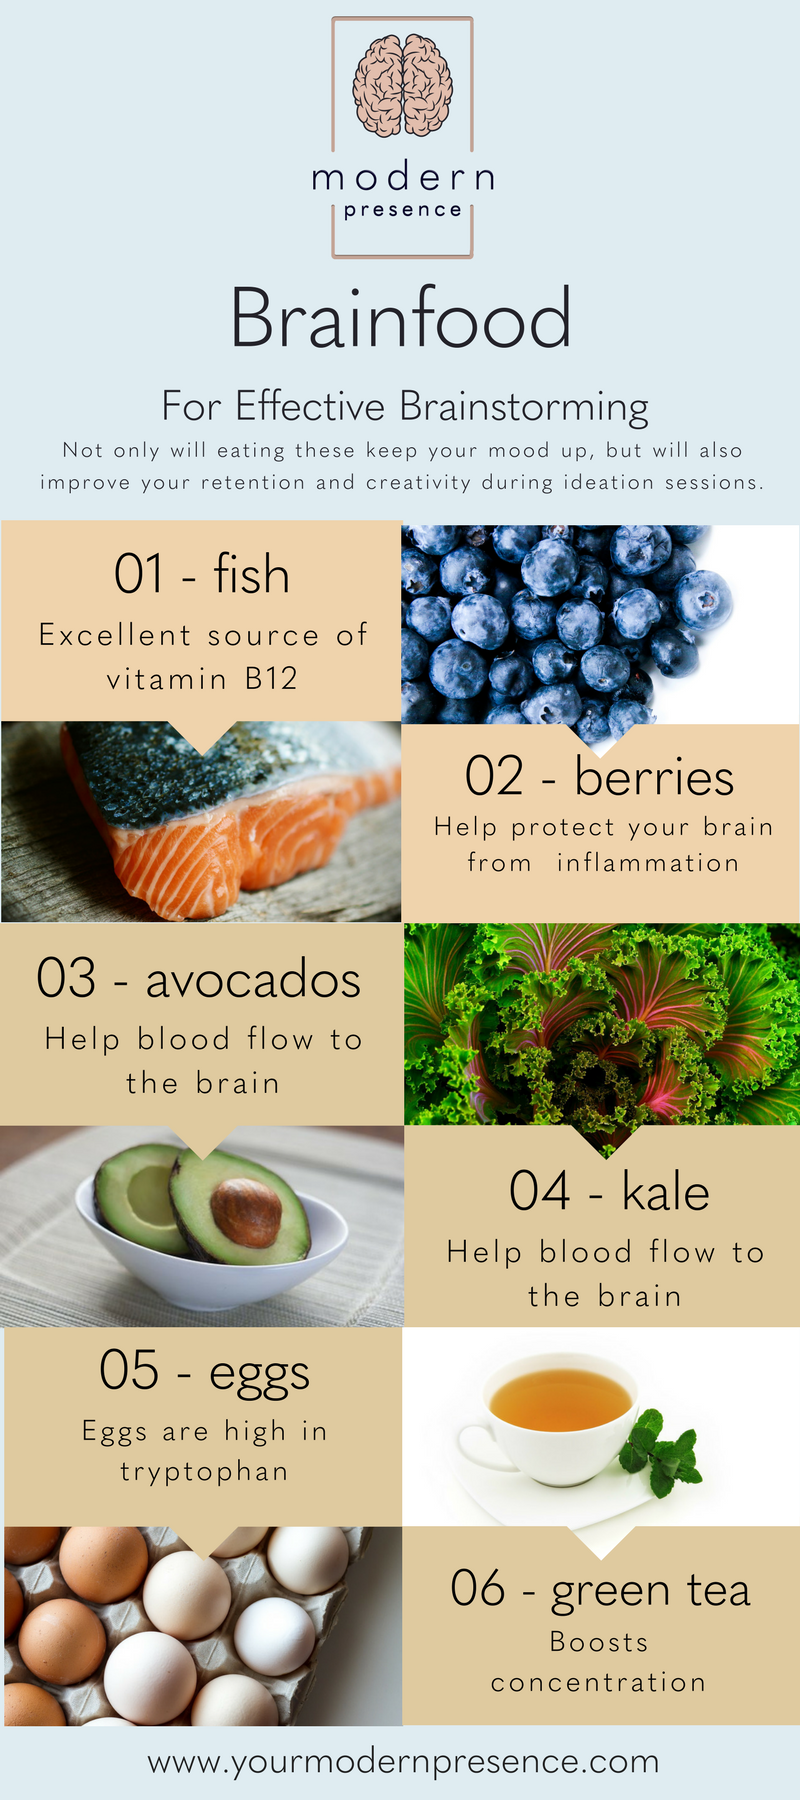 (https://www.rd.com/health/conditions/best-brain-food/)    (https://draxe.com/benefits-of-green-tea/)    (http://nutritiondata.self.com/facts/vegetables-and-vegetable-products/2461/2)